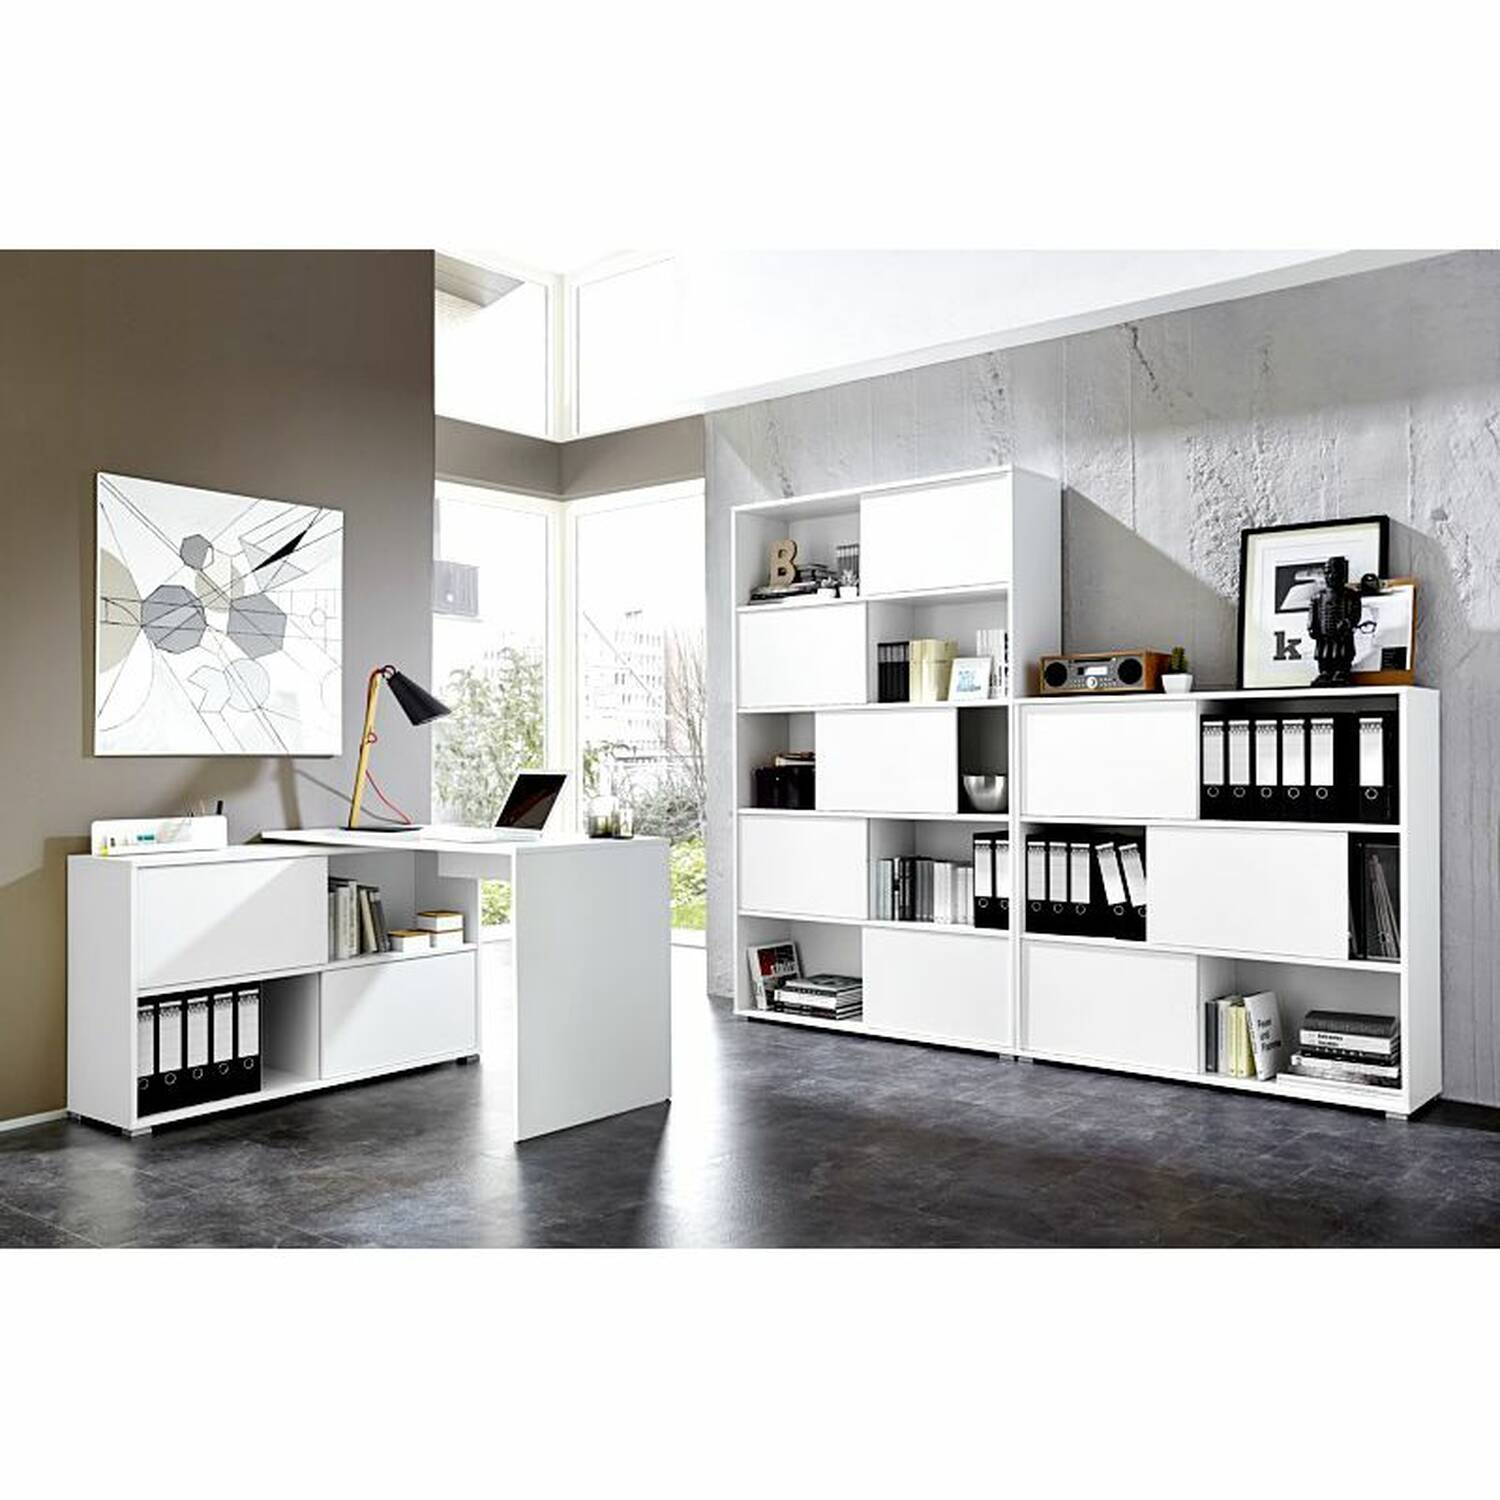 b rom bel set 3 teilig manhatten 01 wei szl. Black Bedroom Furniture Sets. Home Design Ideas